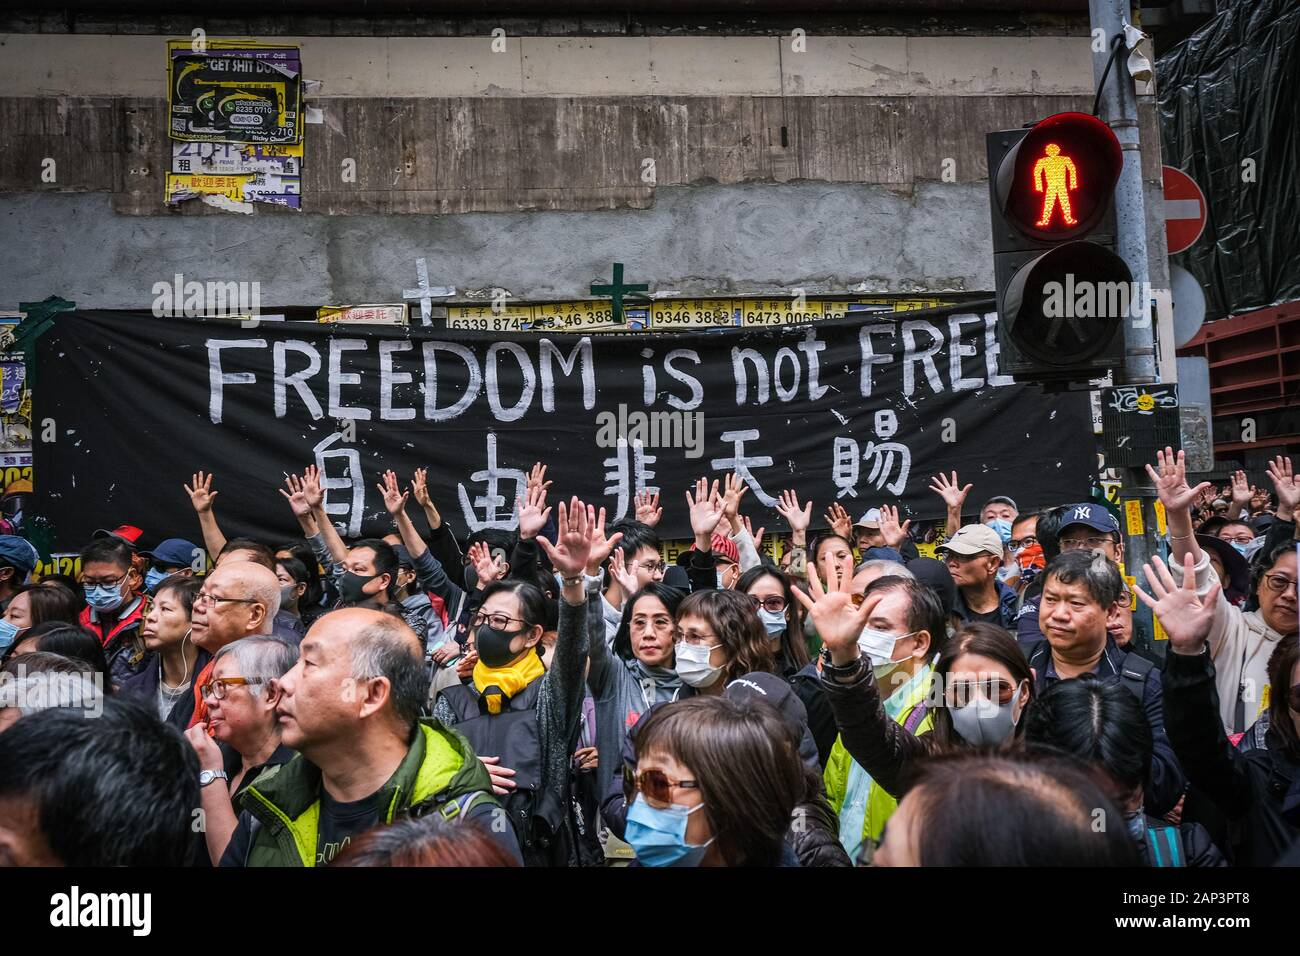 HONG KONG, CHINA - JANUARY 1: Protest against government for new year day, in Hong Kong on January 1, 2020 in Hong Kong, China. Stock Photo